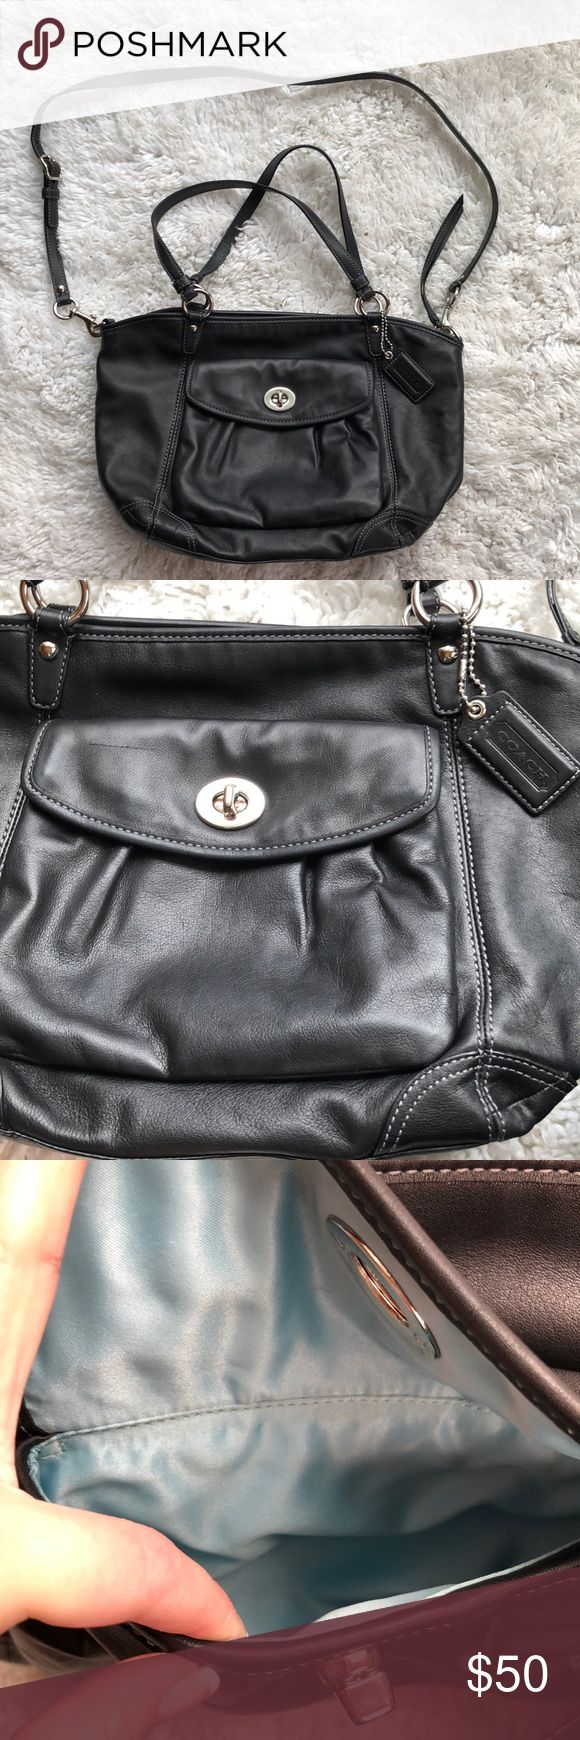 COACH PURSE It has straps for shoulder wear and a long strap to be worn as a crossbody. It is an older model but is in PERFECT condition with no wears or tears anywhere. The inside of the purse looks brand new and super clean. Coach Bags Crossbody Bags